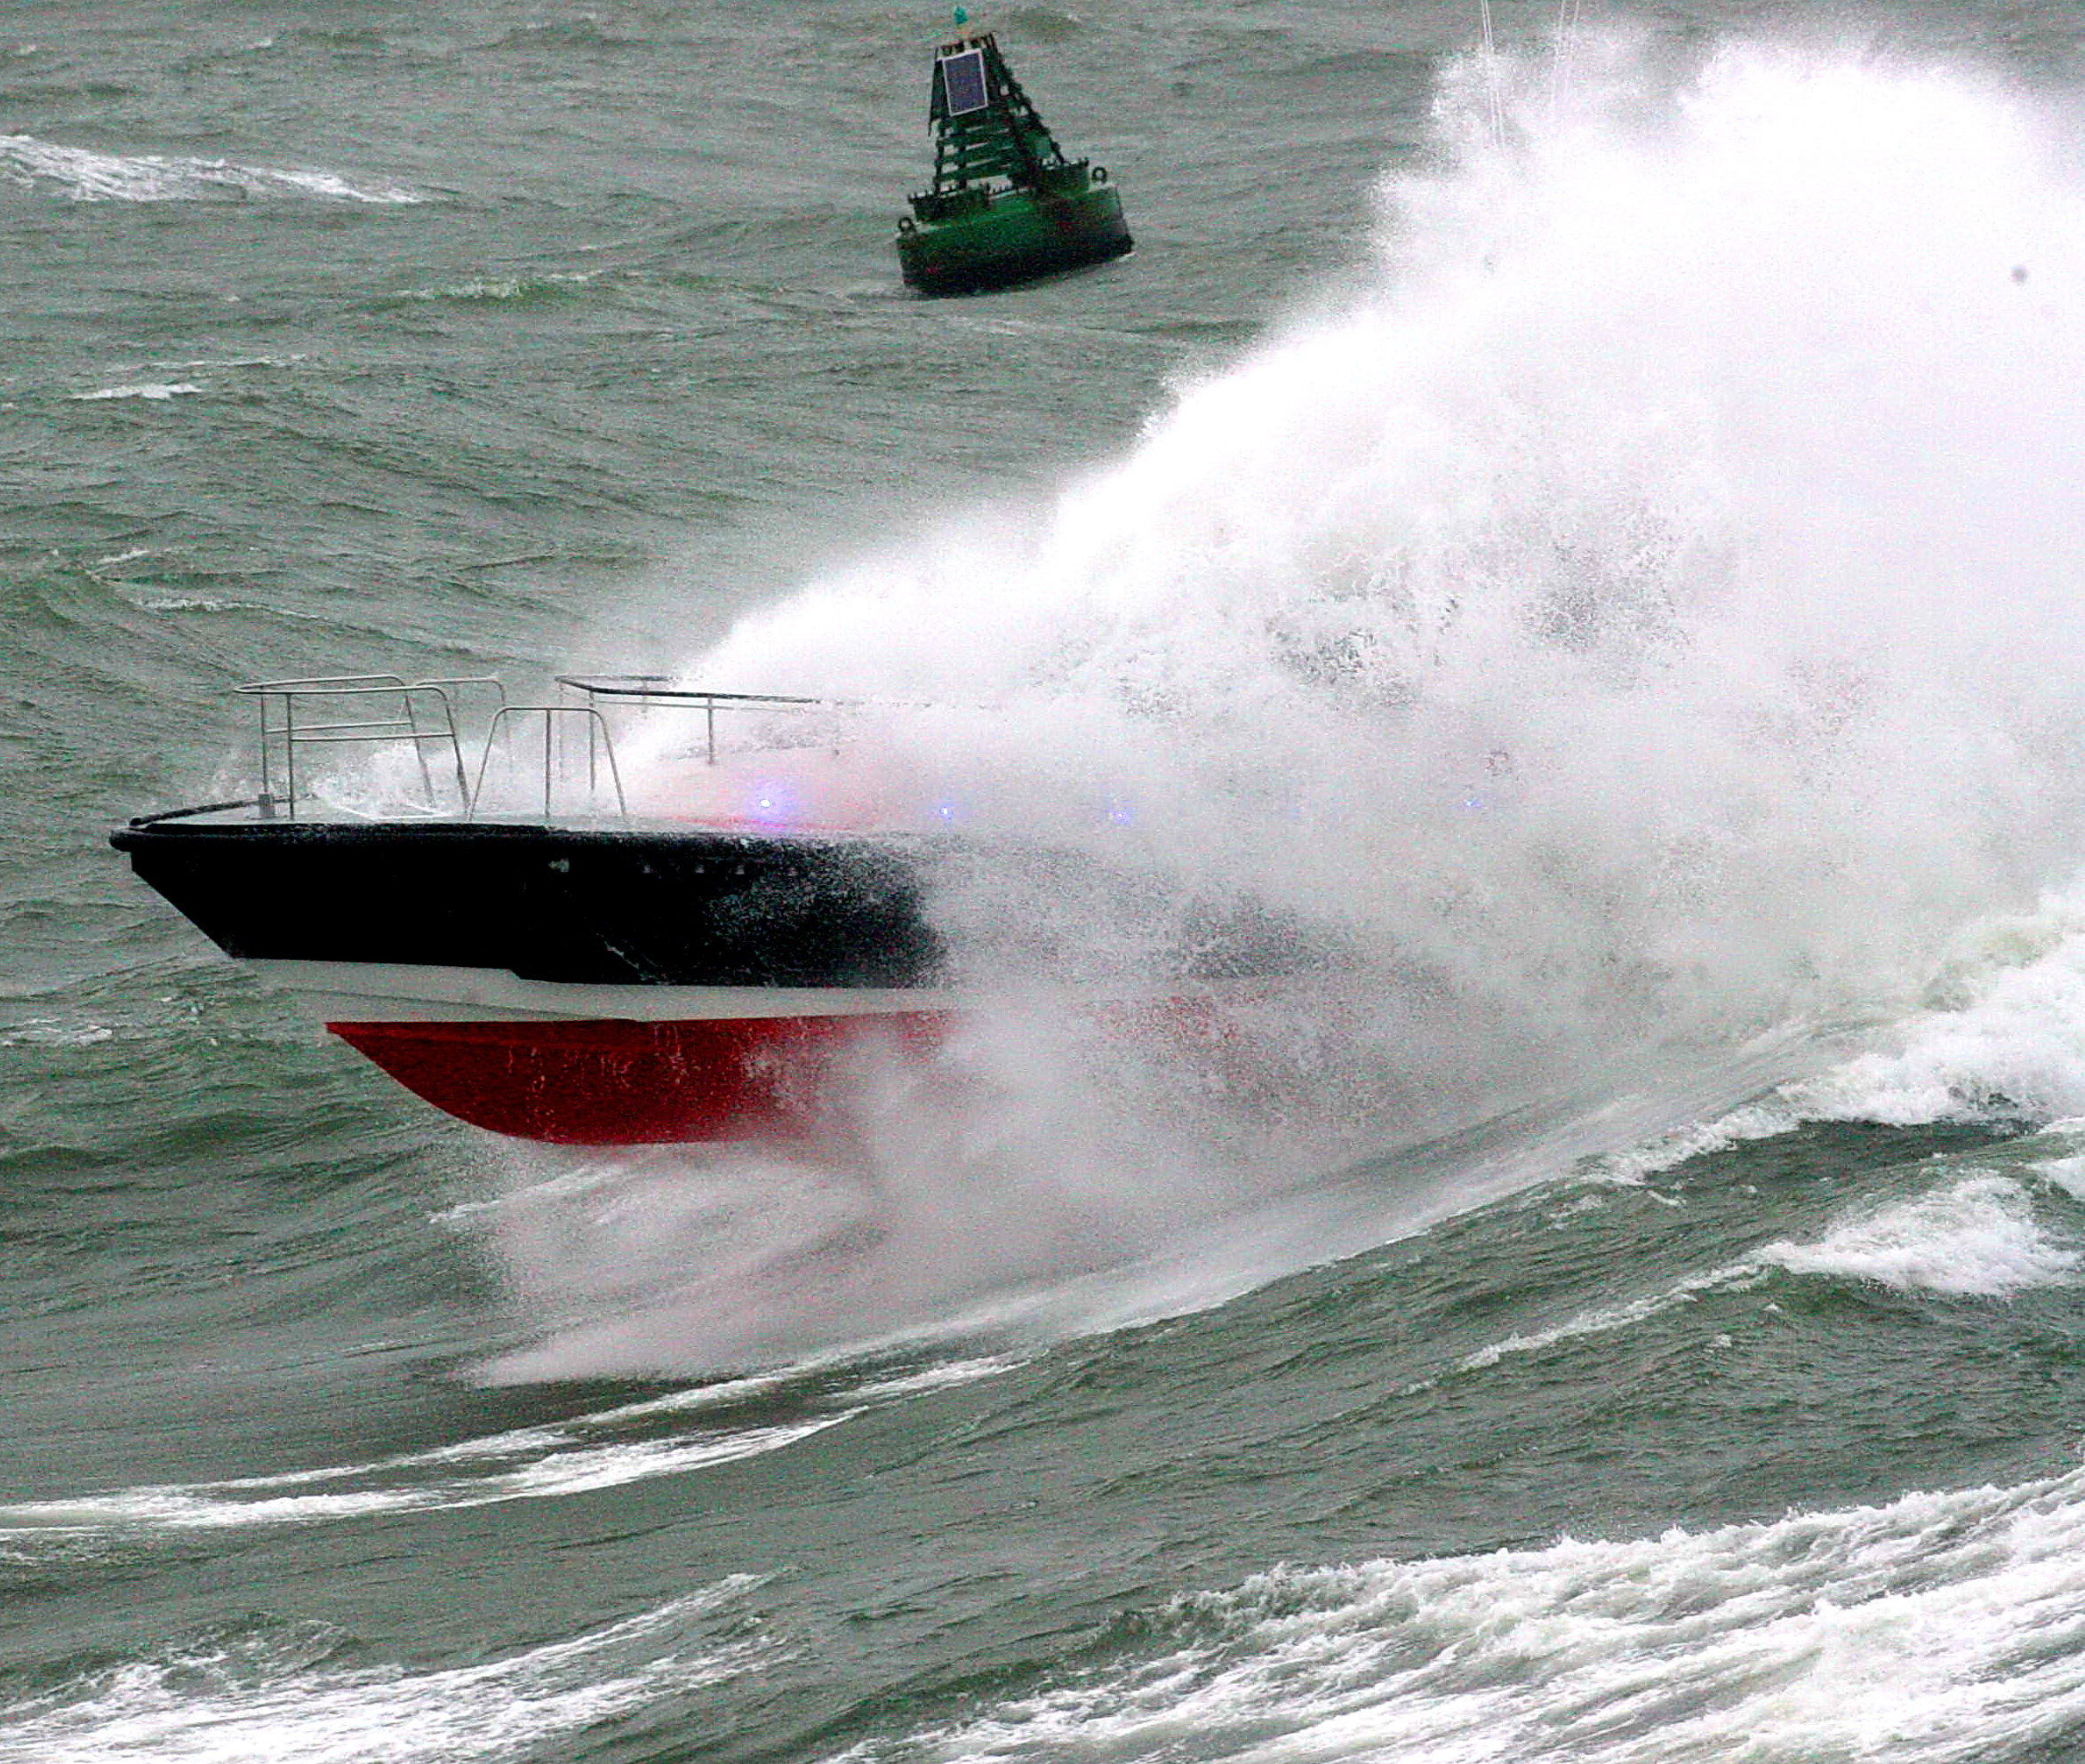 Pilot boat through wave 5